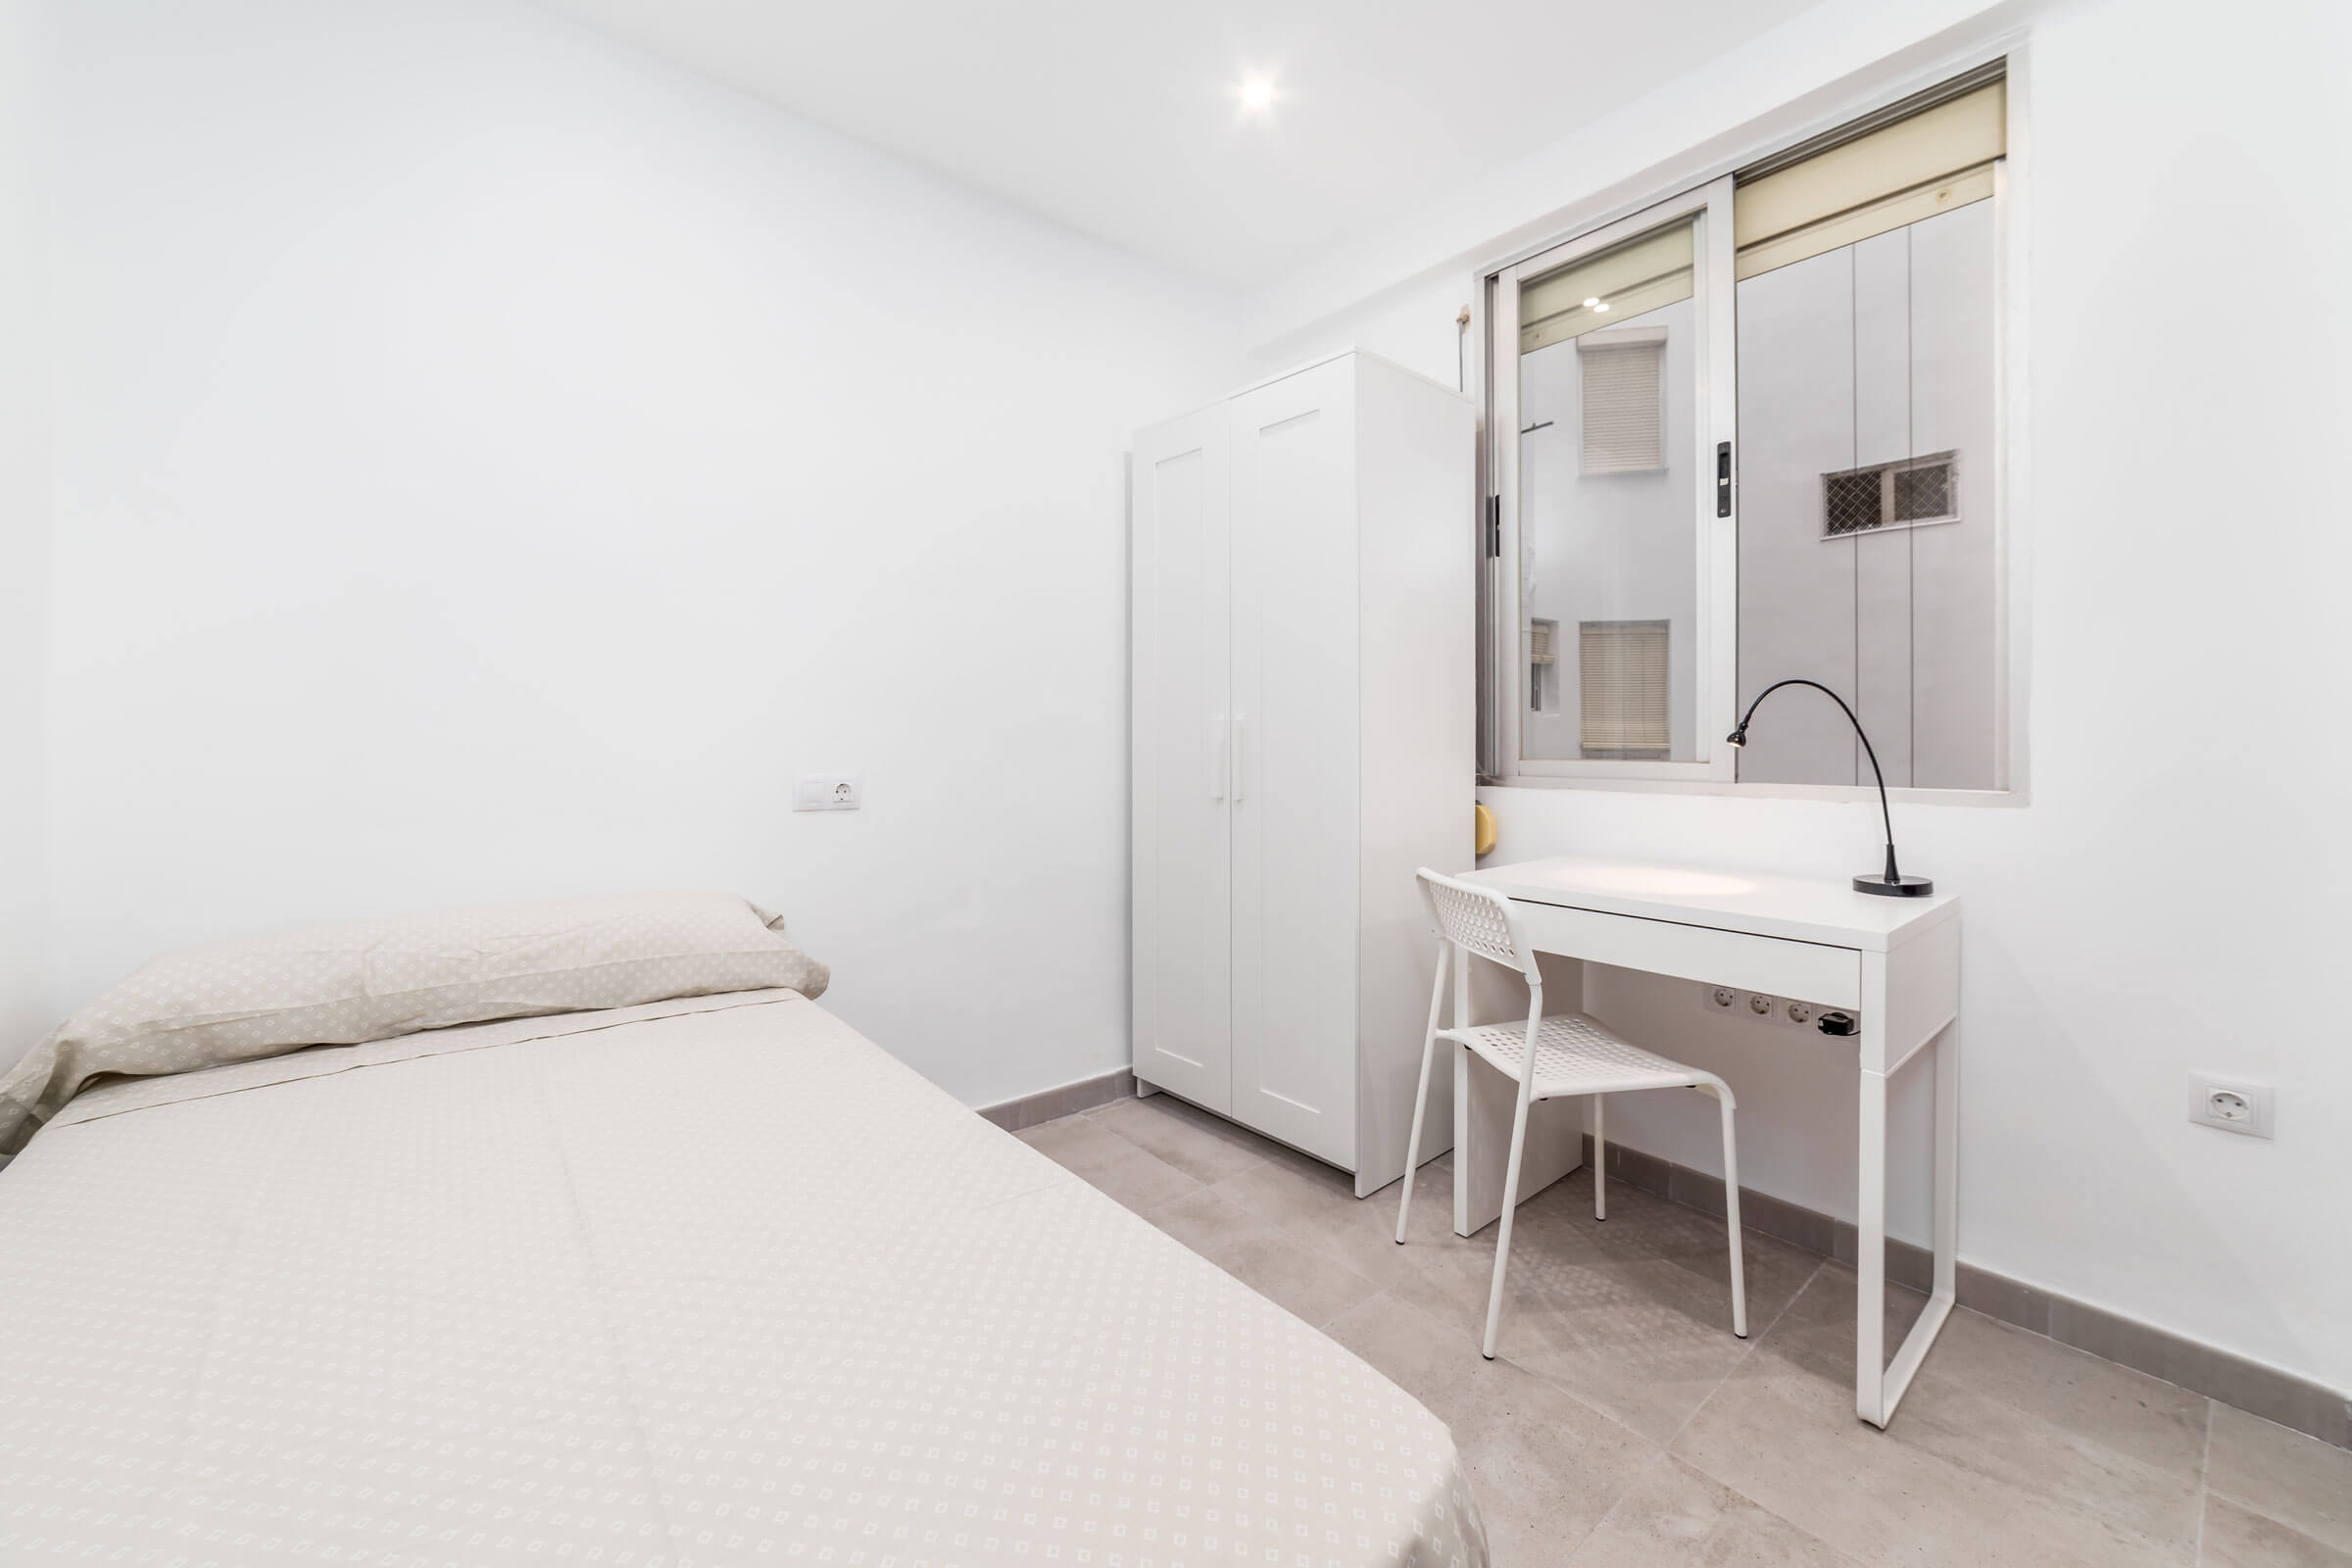 Single bedroom with desk and wardrobe